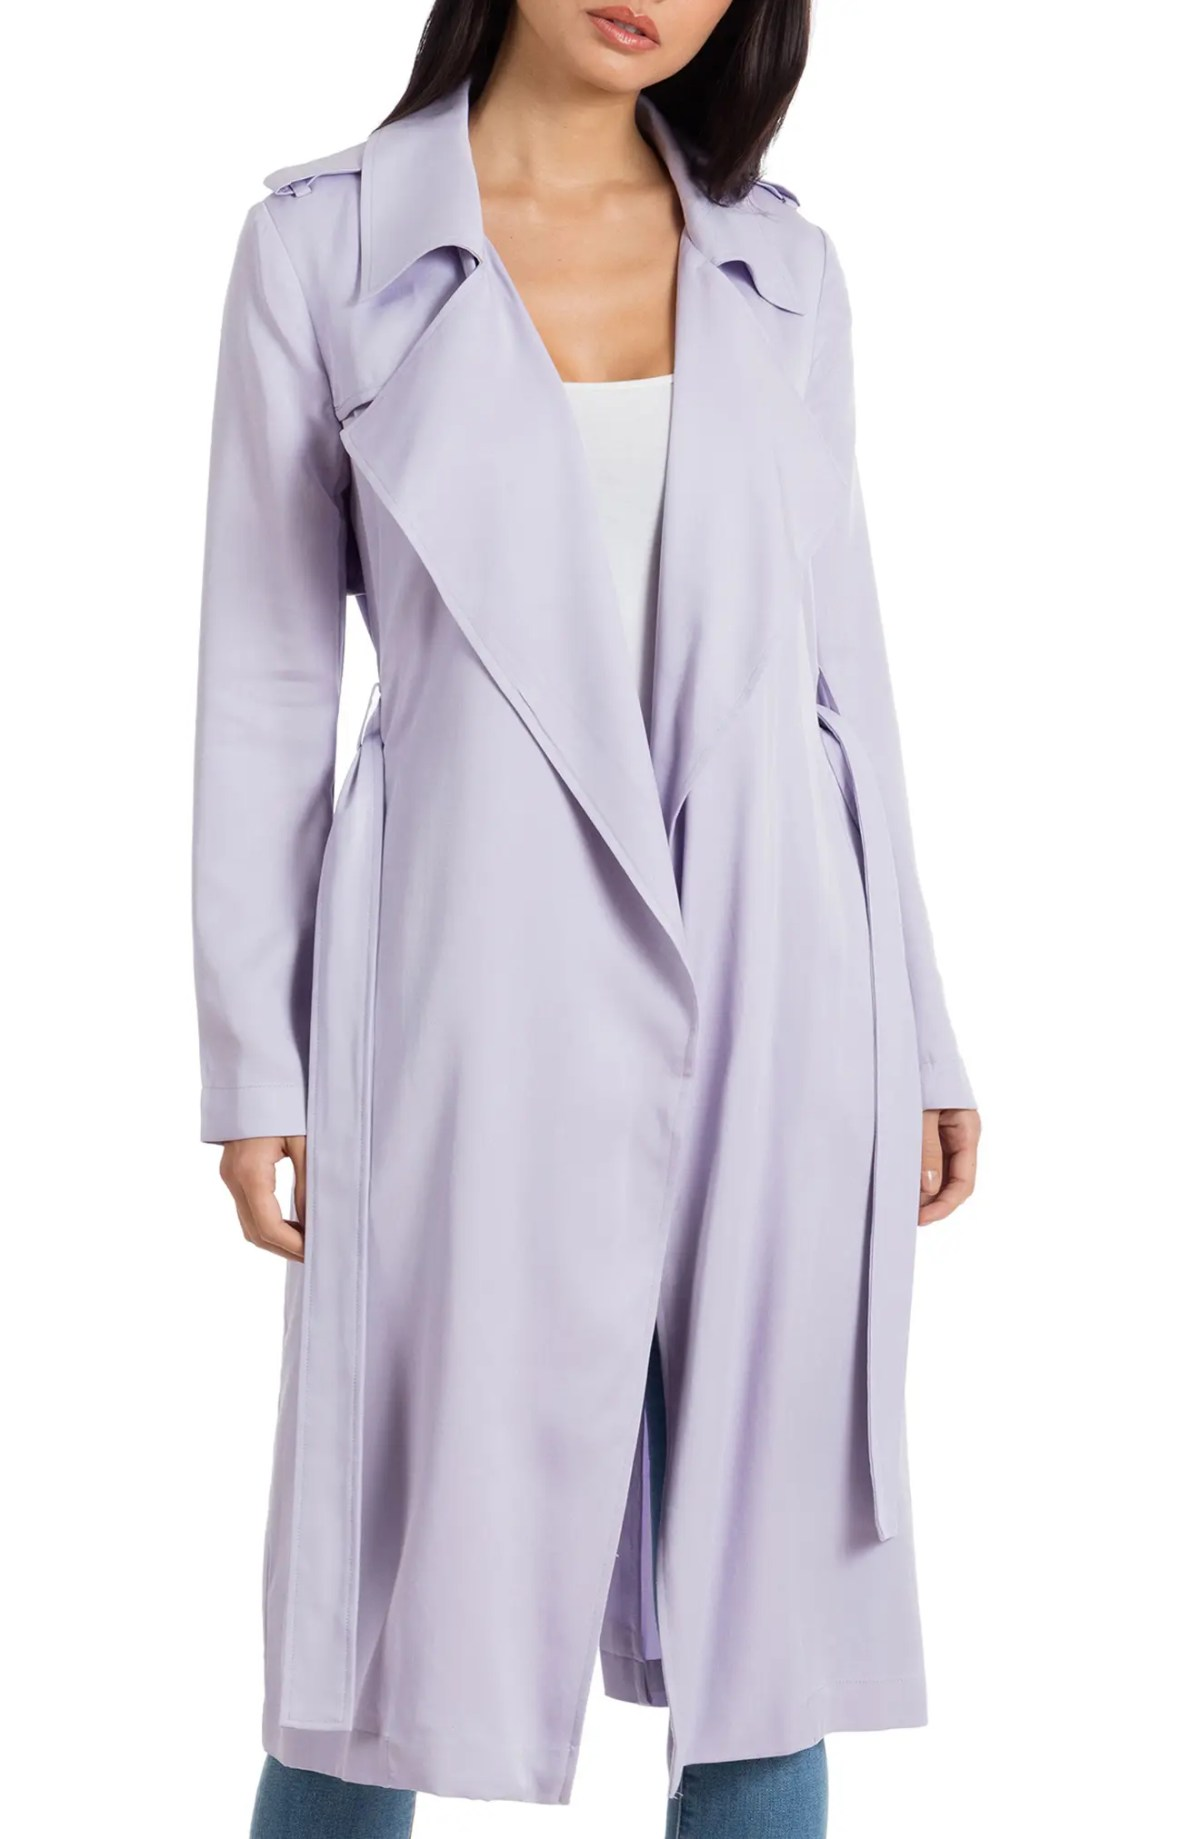 BADGLEY MISCHKA COLLECTION Badgley Mischka Faux Leather Trim Long Trench Coat, Main, color, LAVENDAR